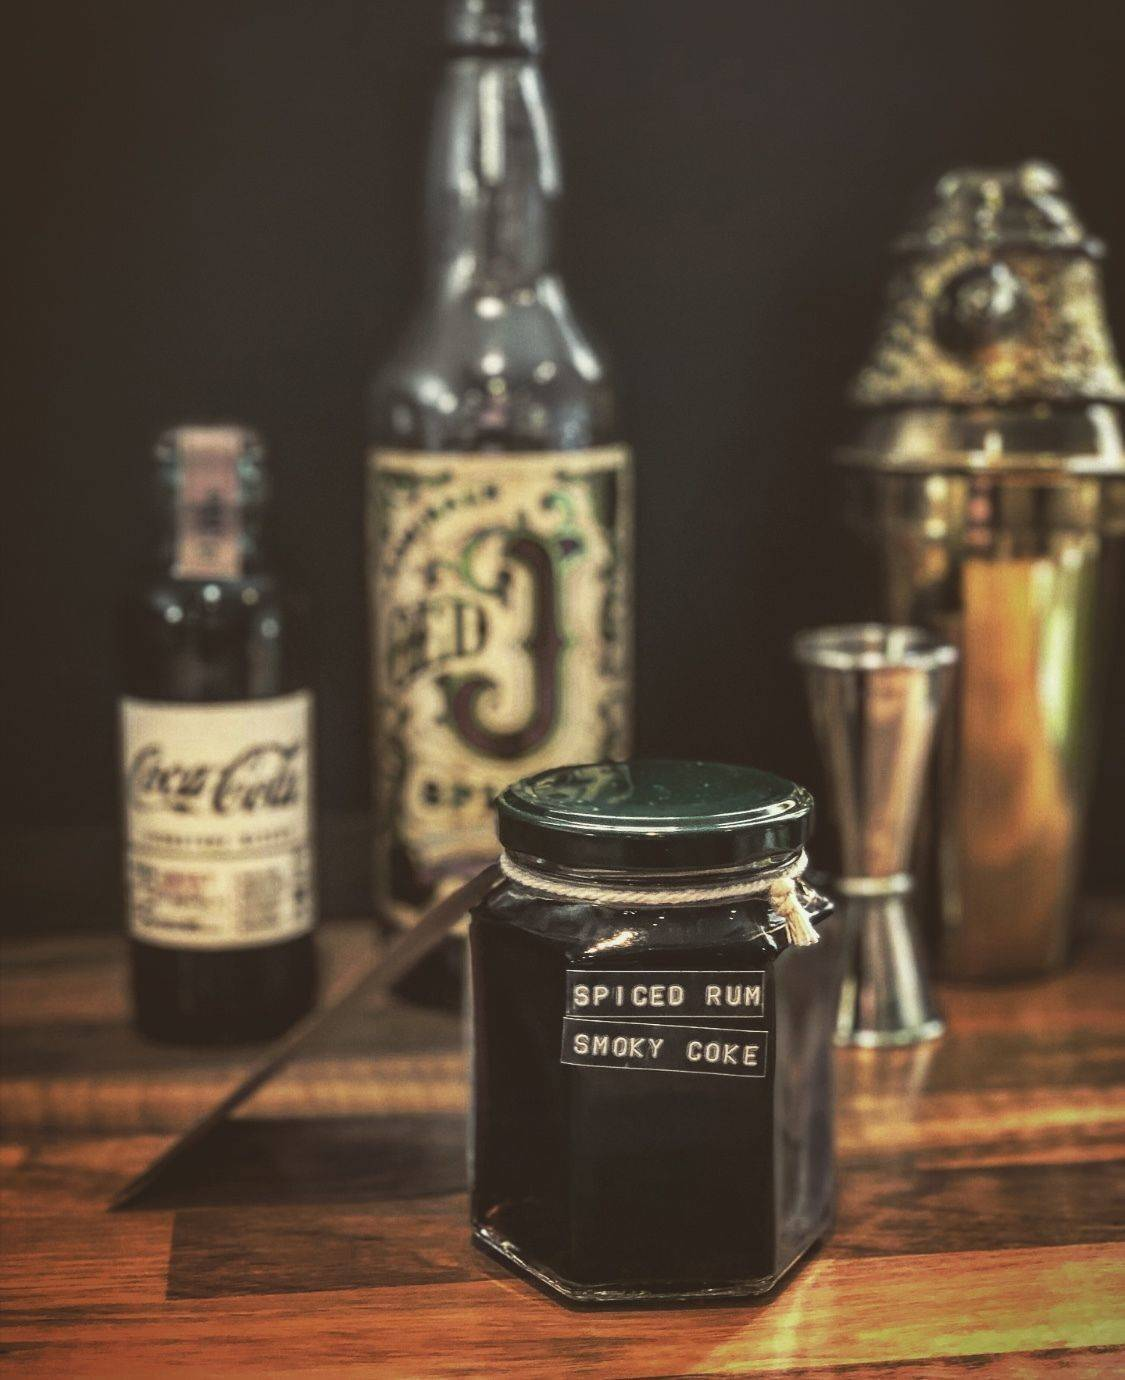 Old 'J' Spiced Rum with Smoky Coke (serves 2)